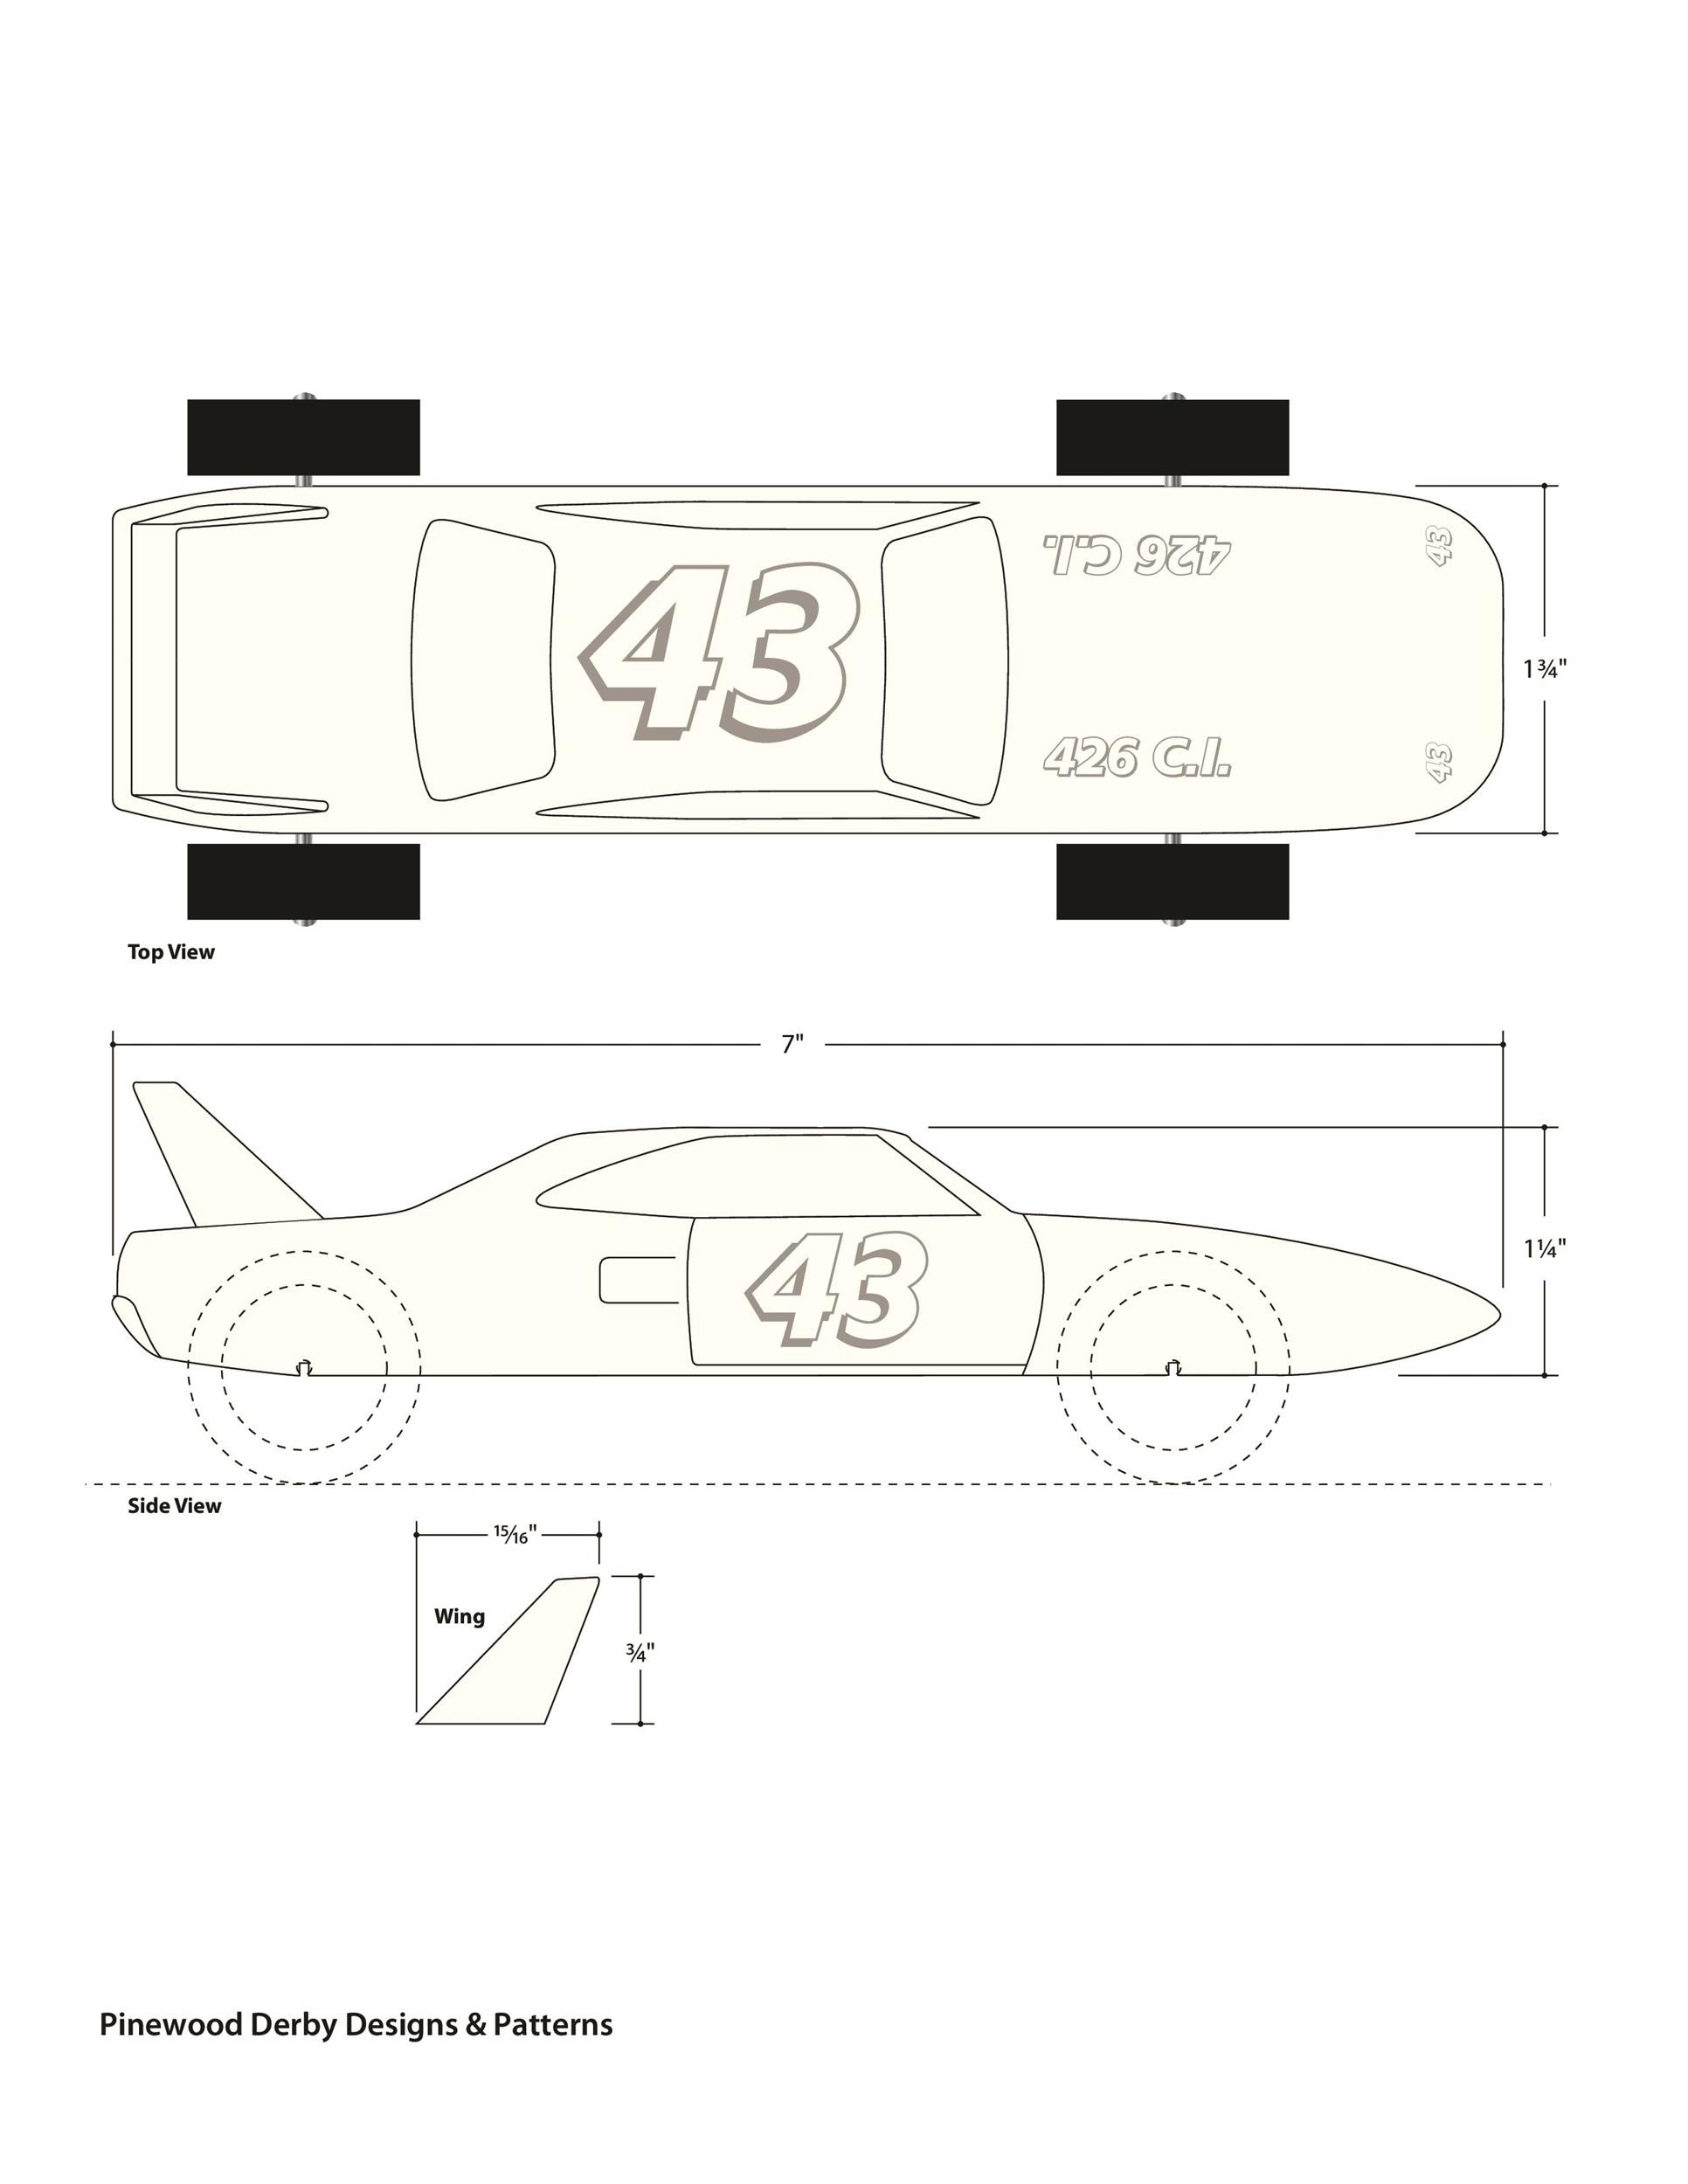 39 Awesome Pinewood Derby Car Designs Templates ᐅ Templatelab